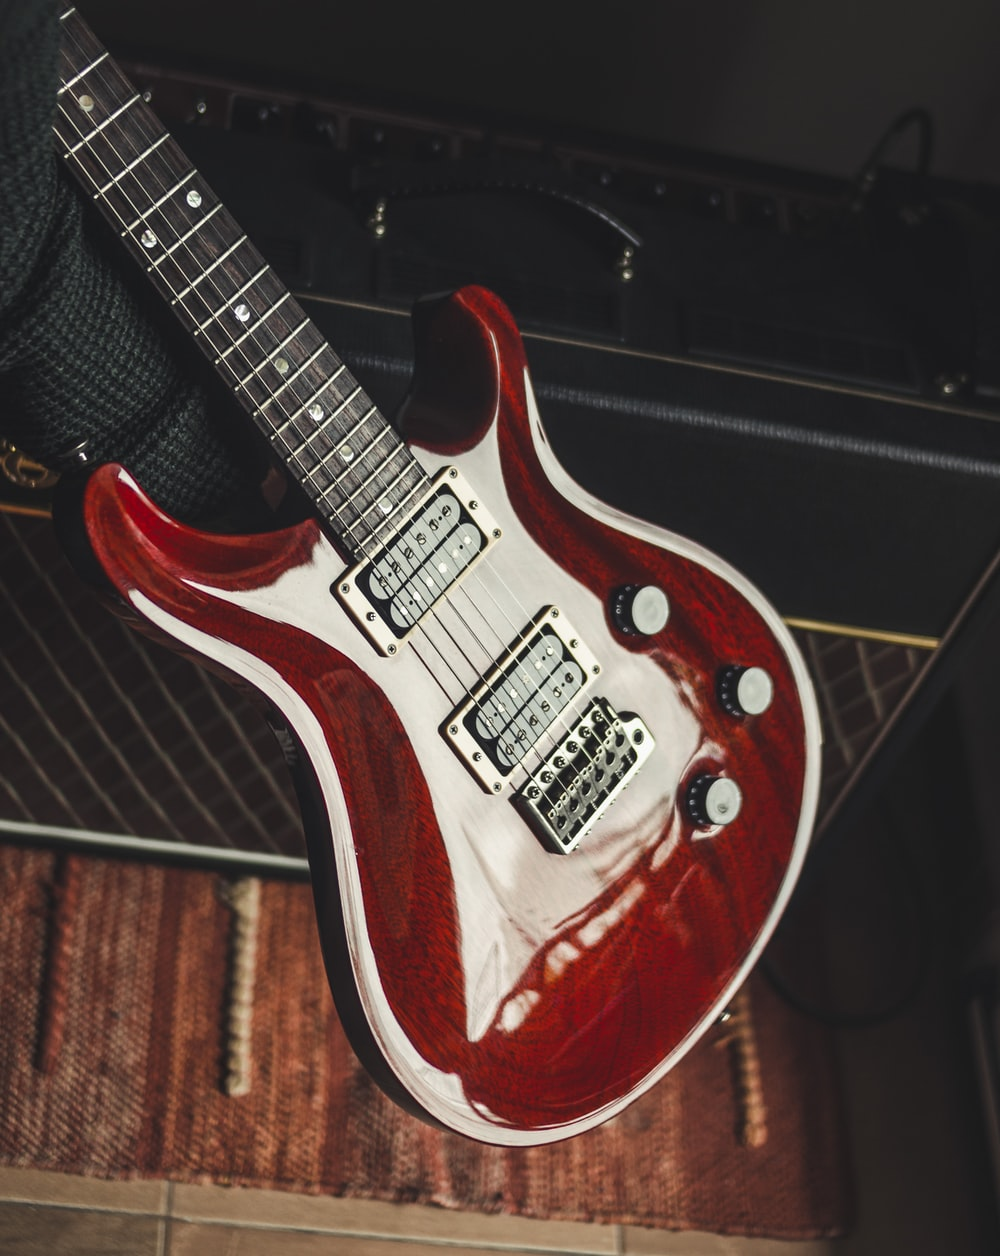 red and white electric guitar